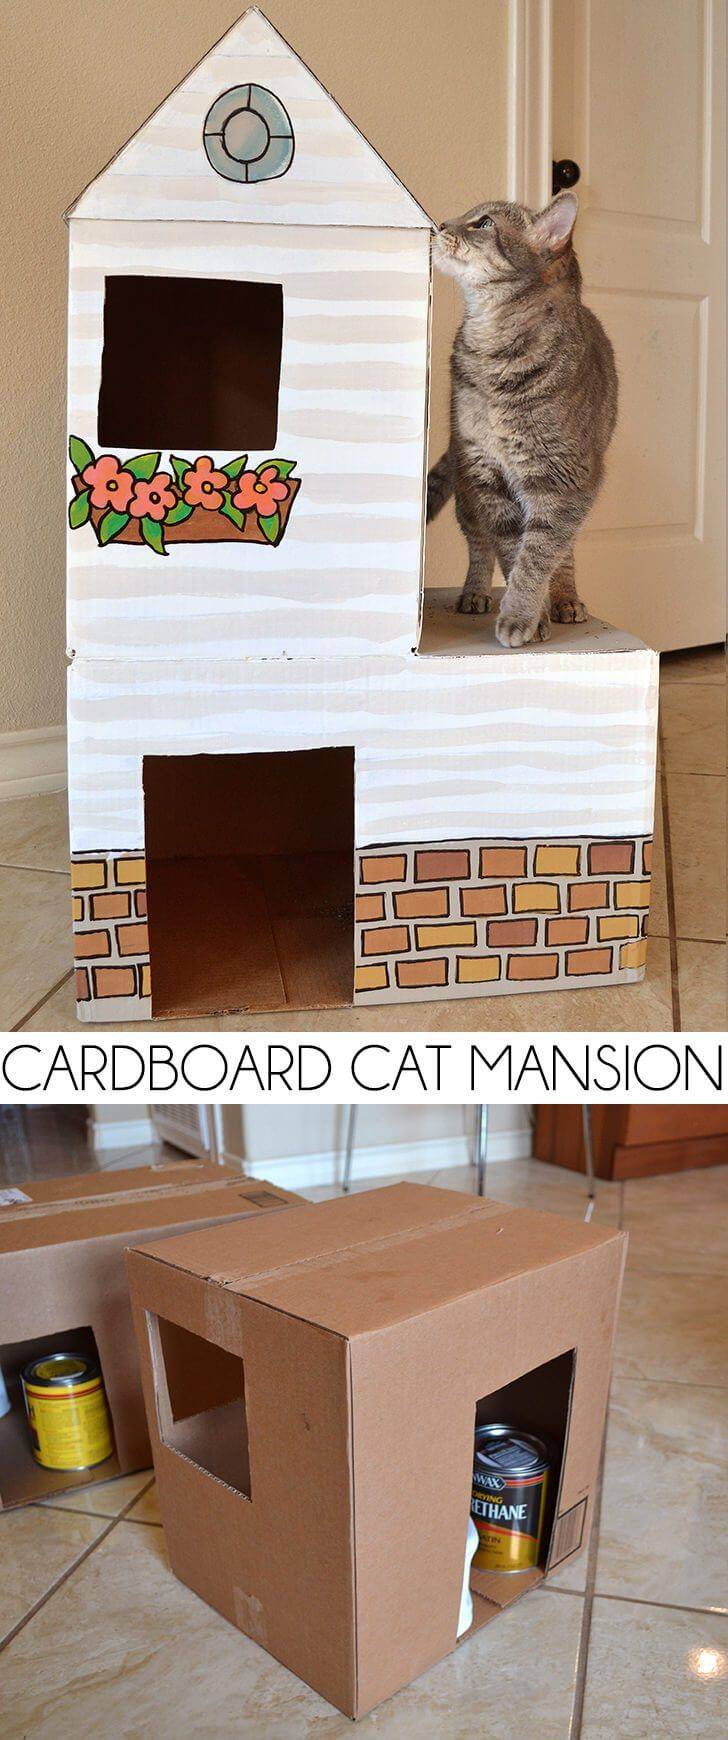 Cardboard Cat Mansion and like OMG! get some yourself some pawtastic adorable cat apparel!